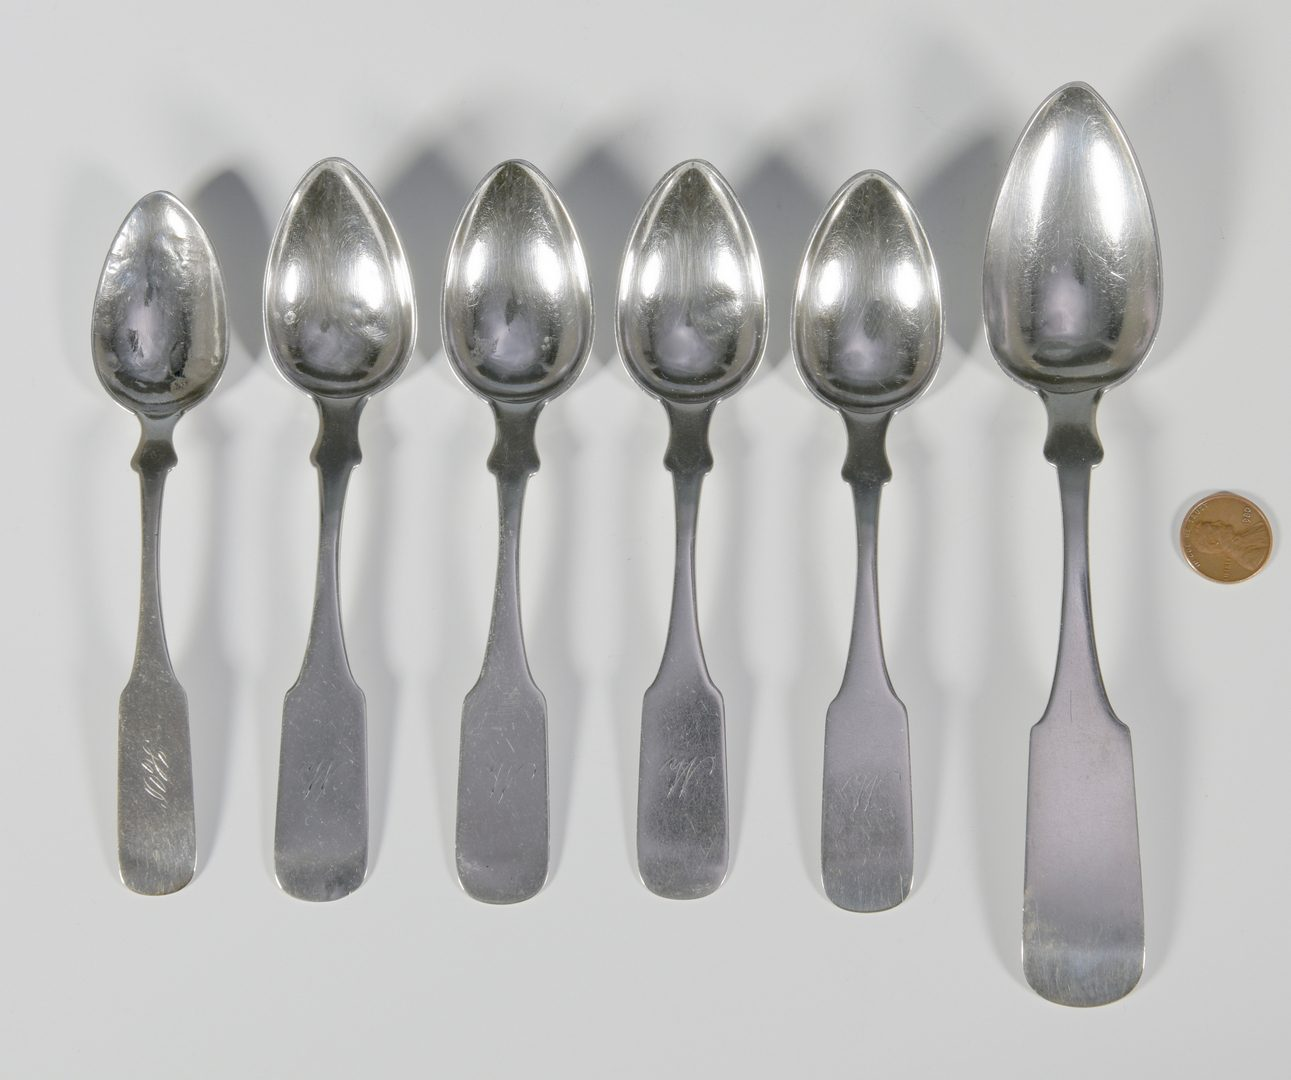 Lot 166: 6 Gowdey and Peabody TN spoons